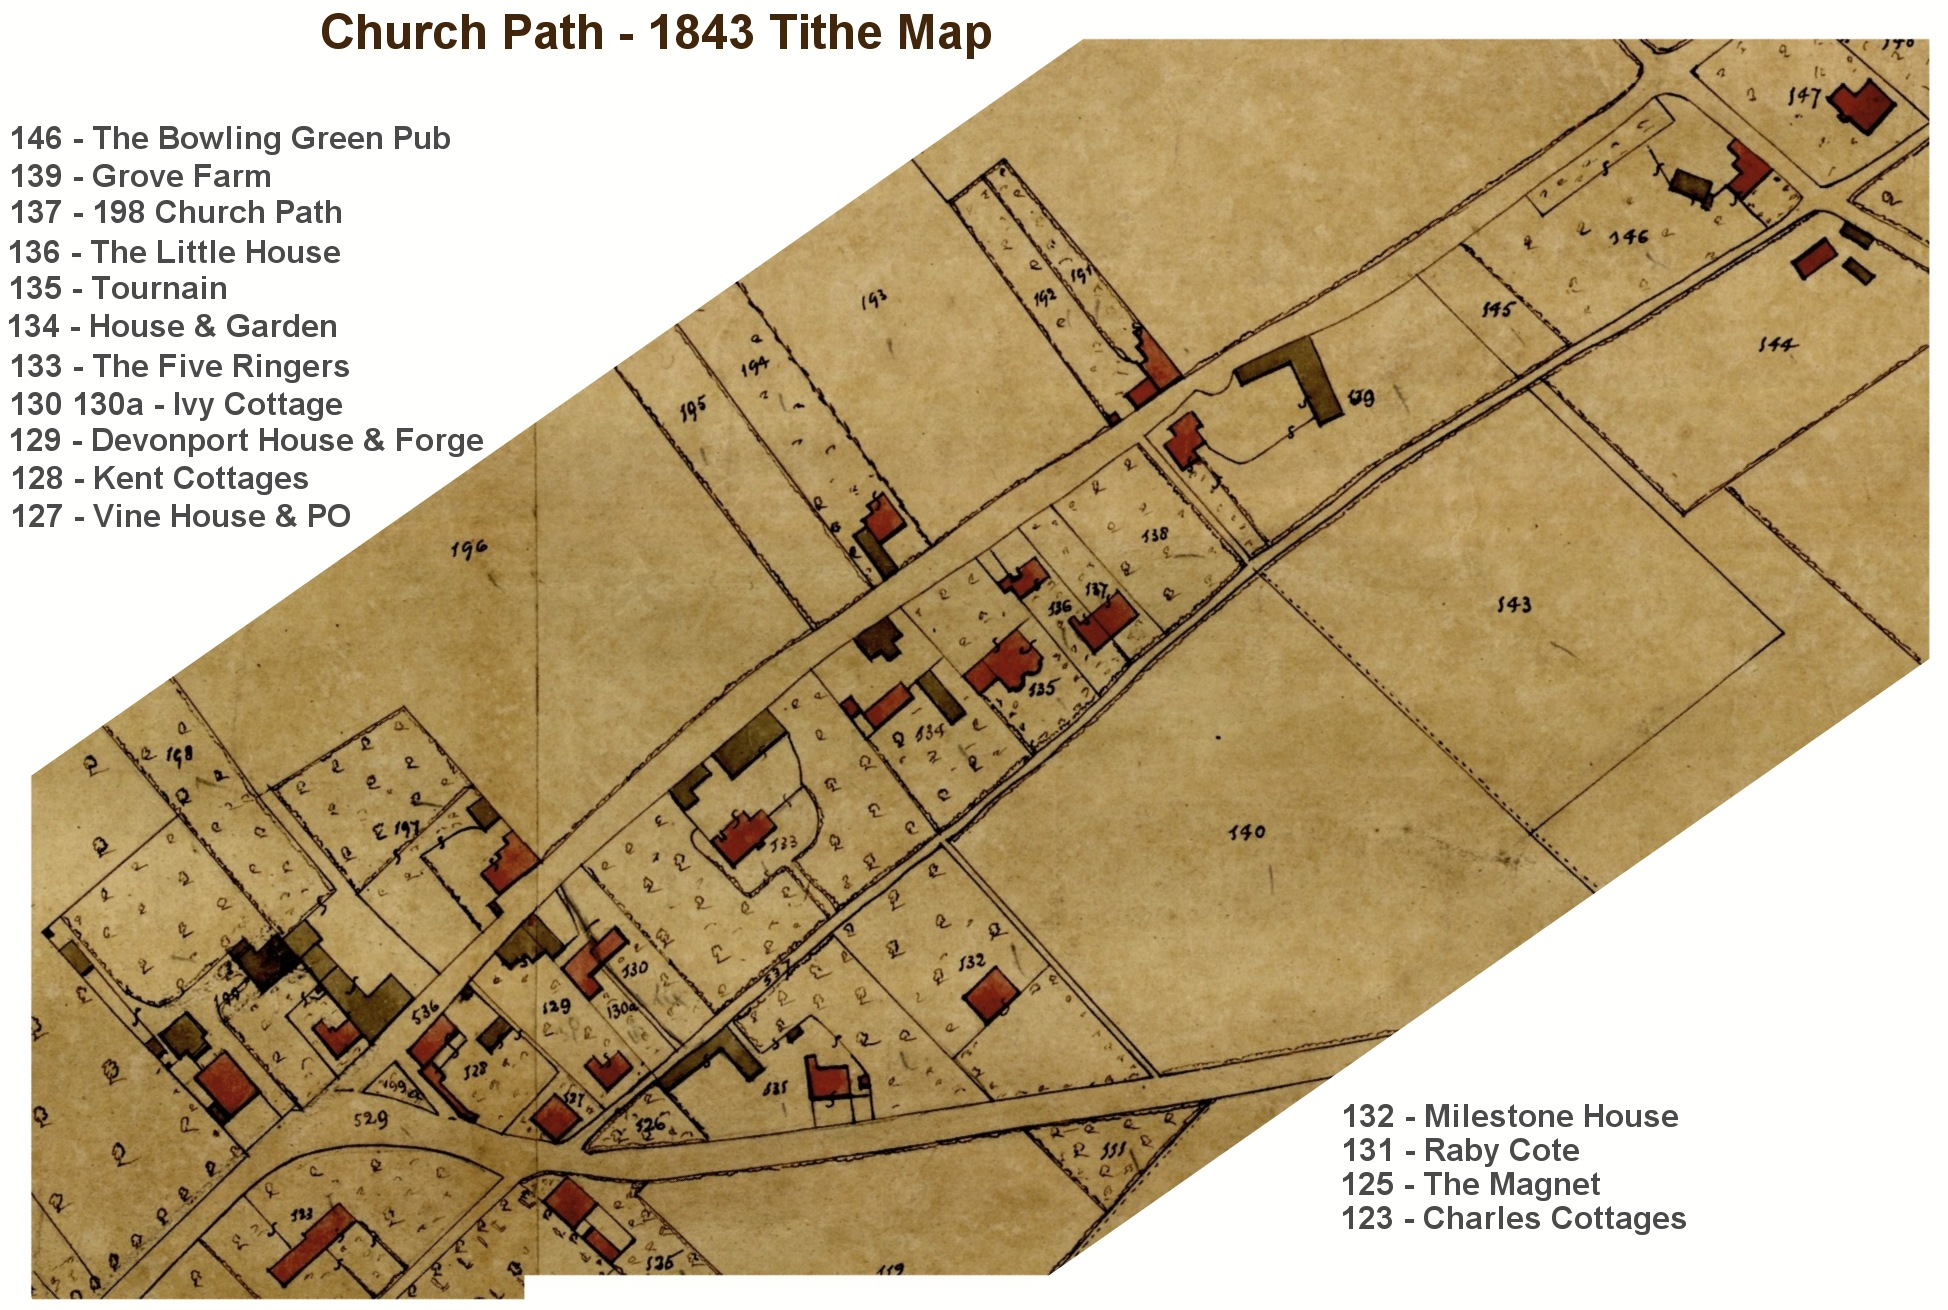 Tithe%20study%20area%20annotated.jpg